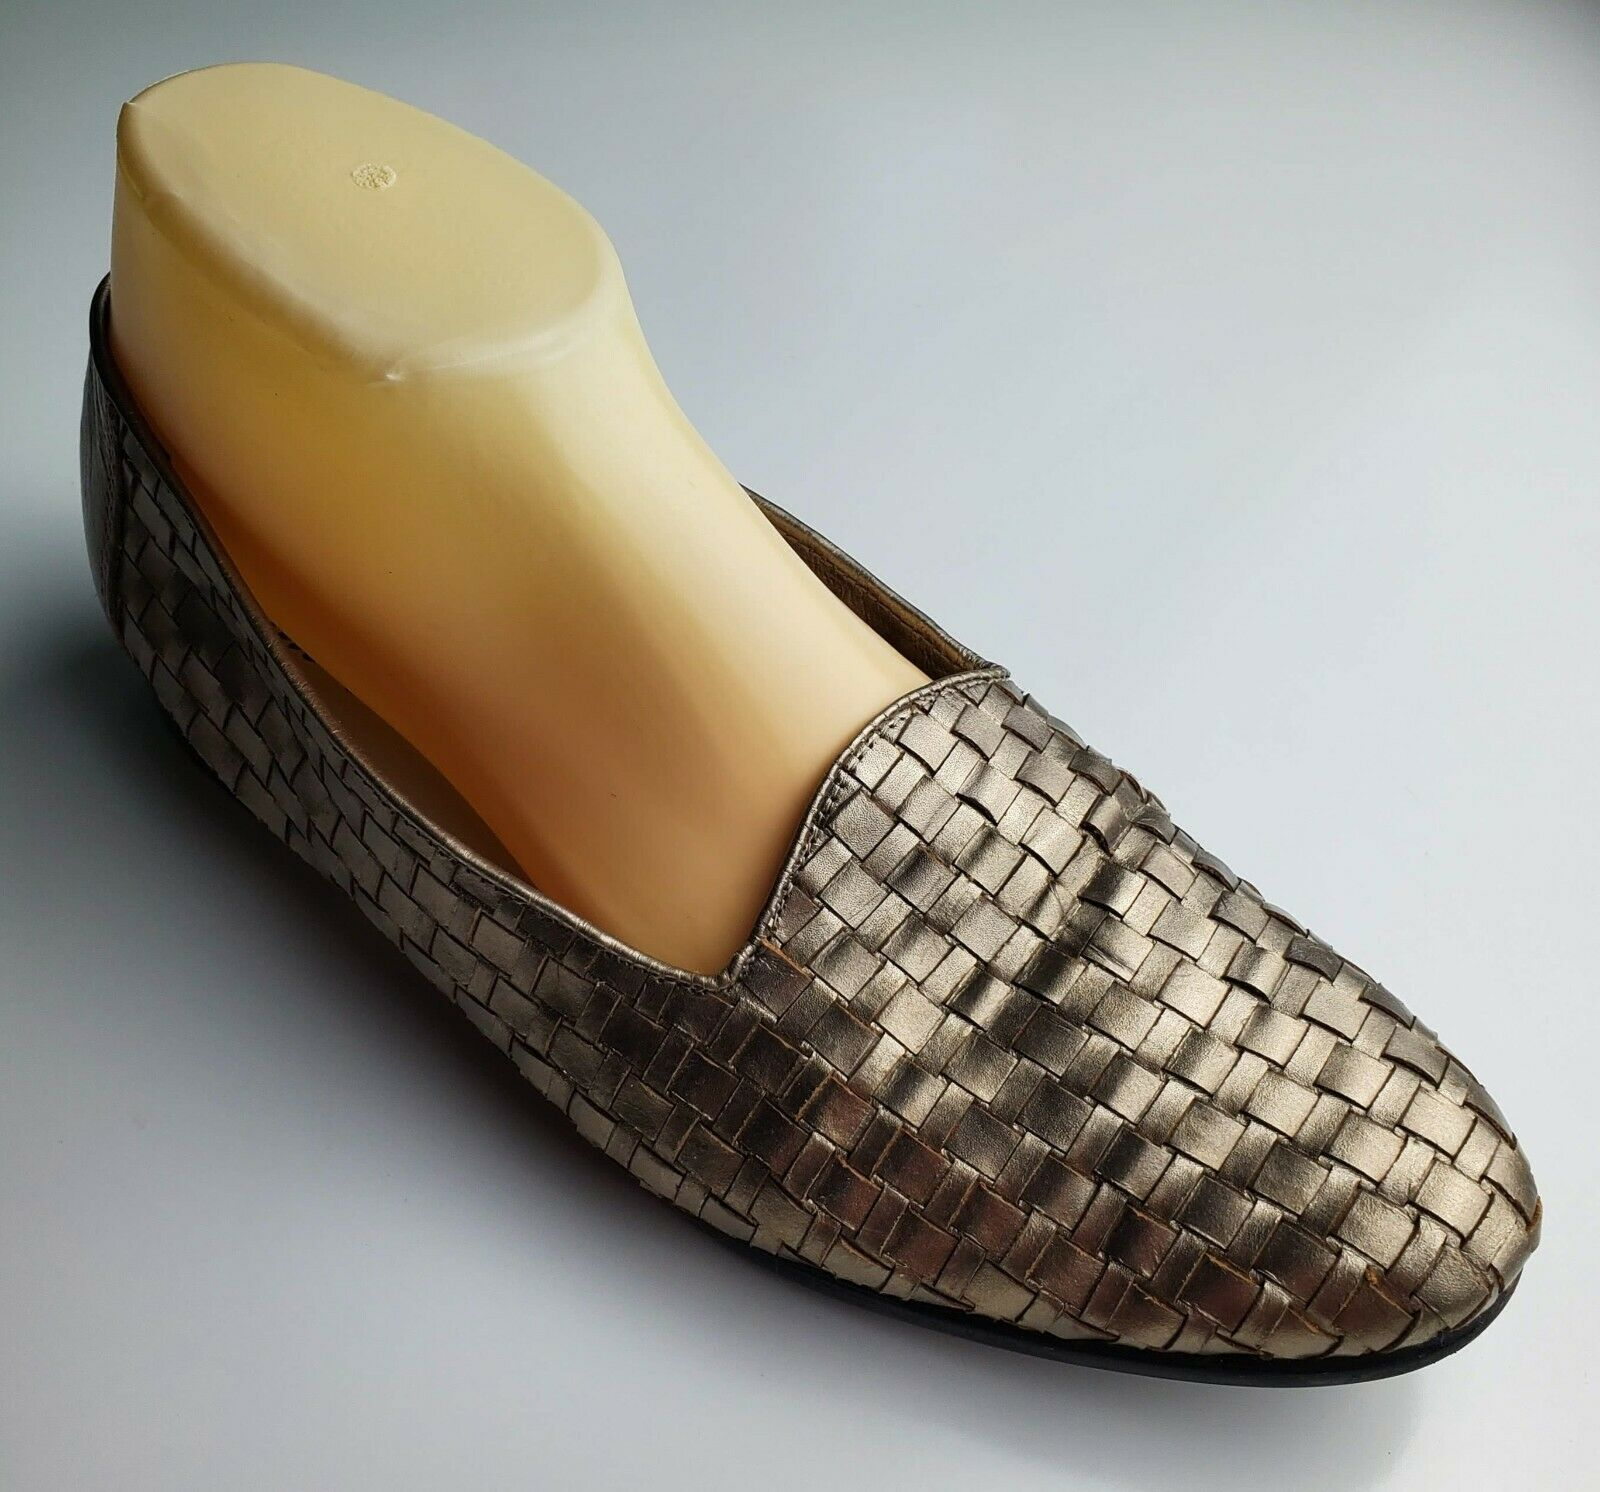 Primary image for Women's Trotters Flat Woven Loafers Gold Metallic Leather Slip On  Size 9 M